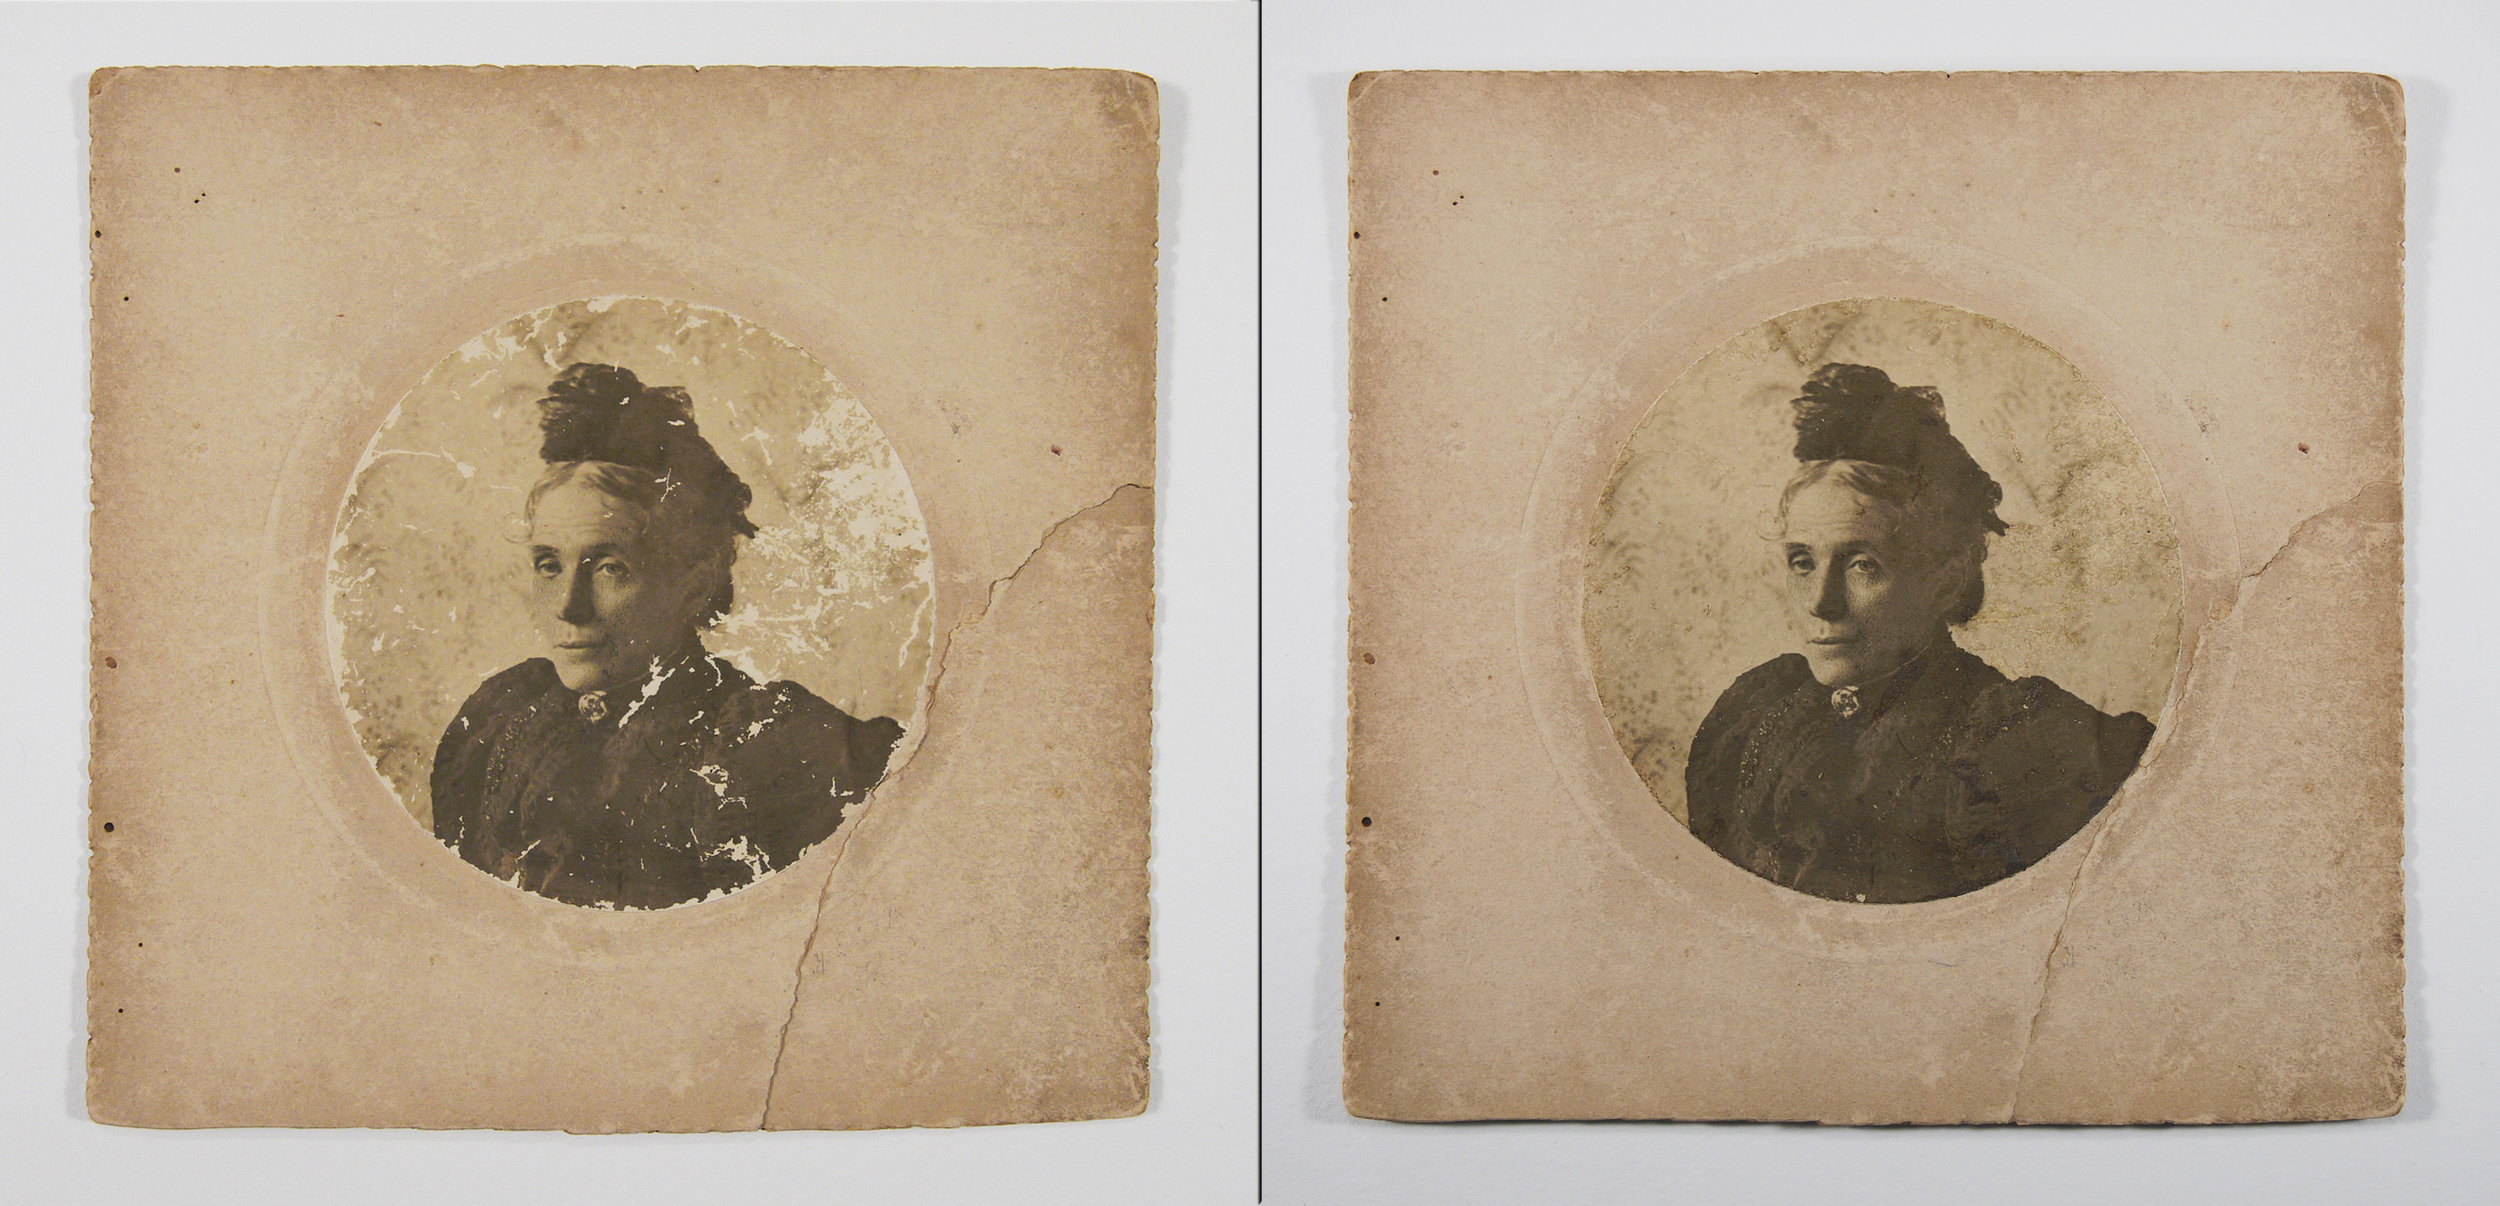 Antique family photograph before and after conservation treatment.